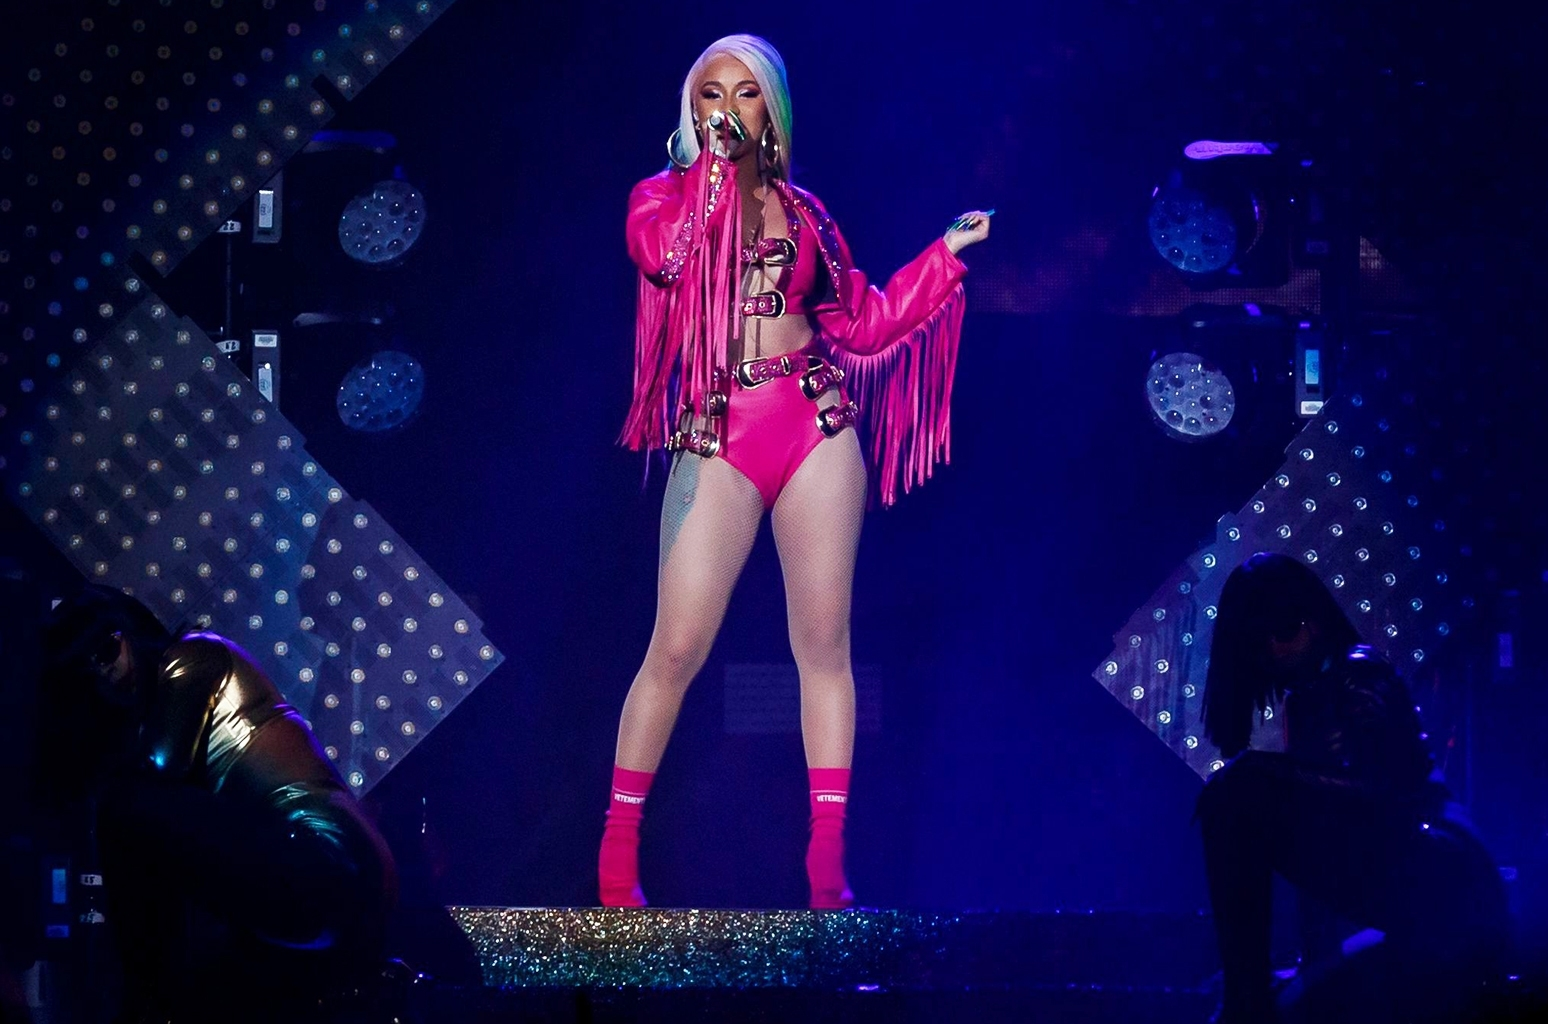 Cardi B's 'girls Like You' Performance In Atlanta: Watch with regard to Cardi B Super Bowl 2019